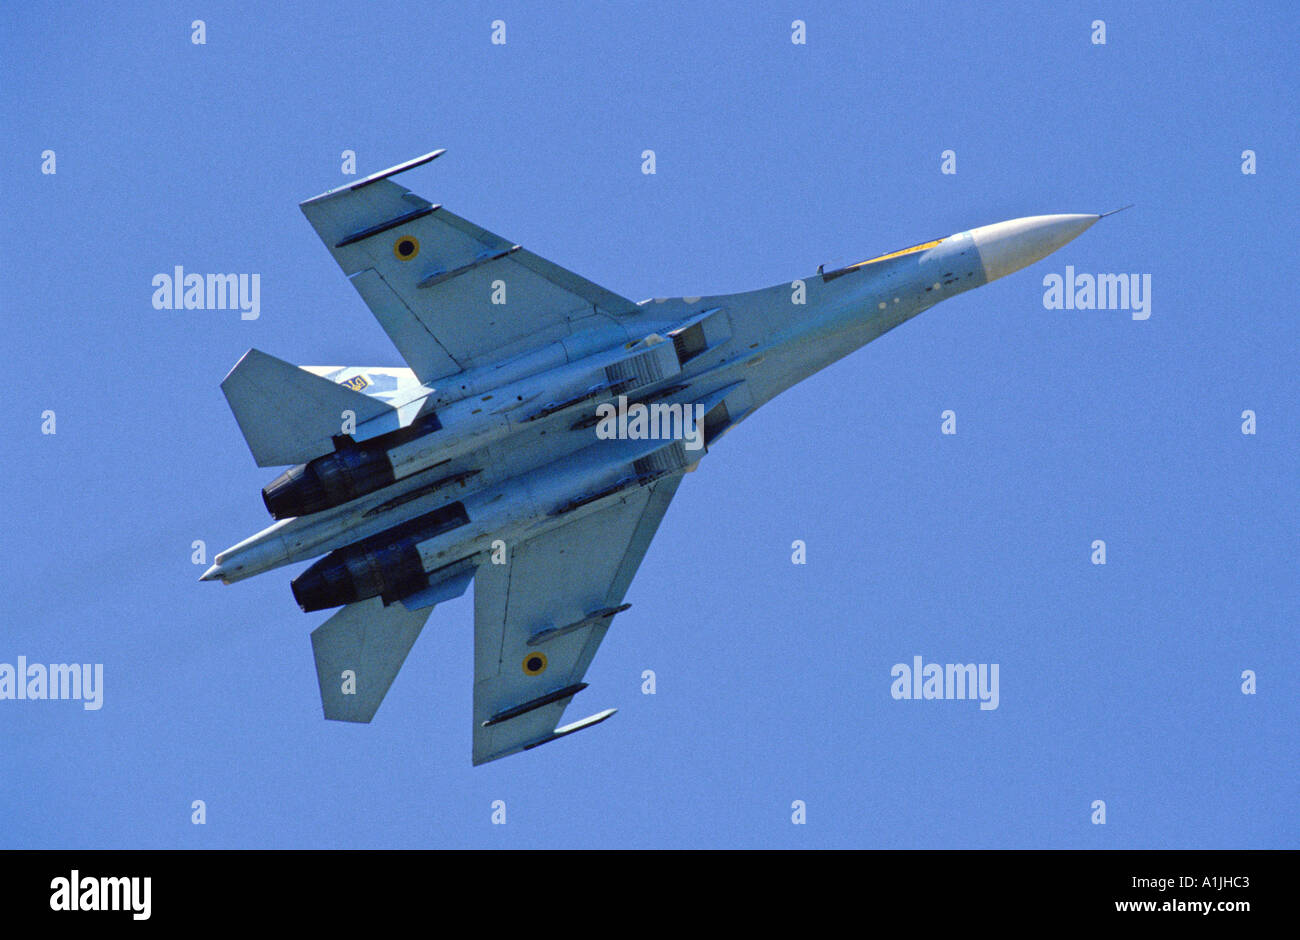 Ukrainian Air Force Sukhoi Su-27 Flanker fighter aircraft - Stock Image